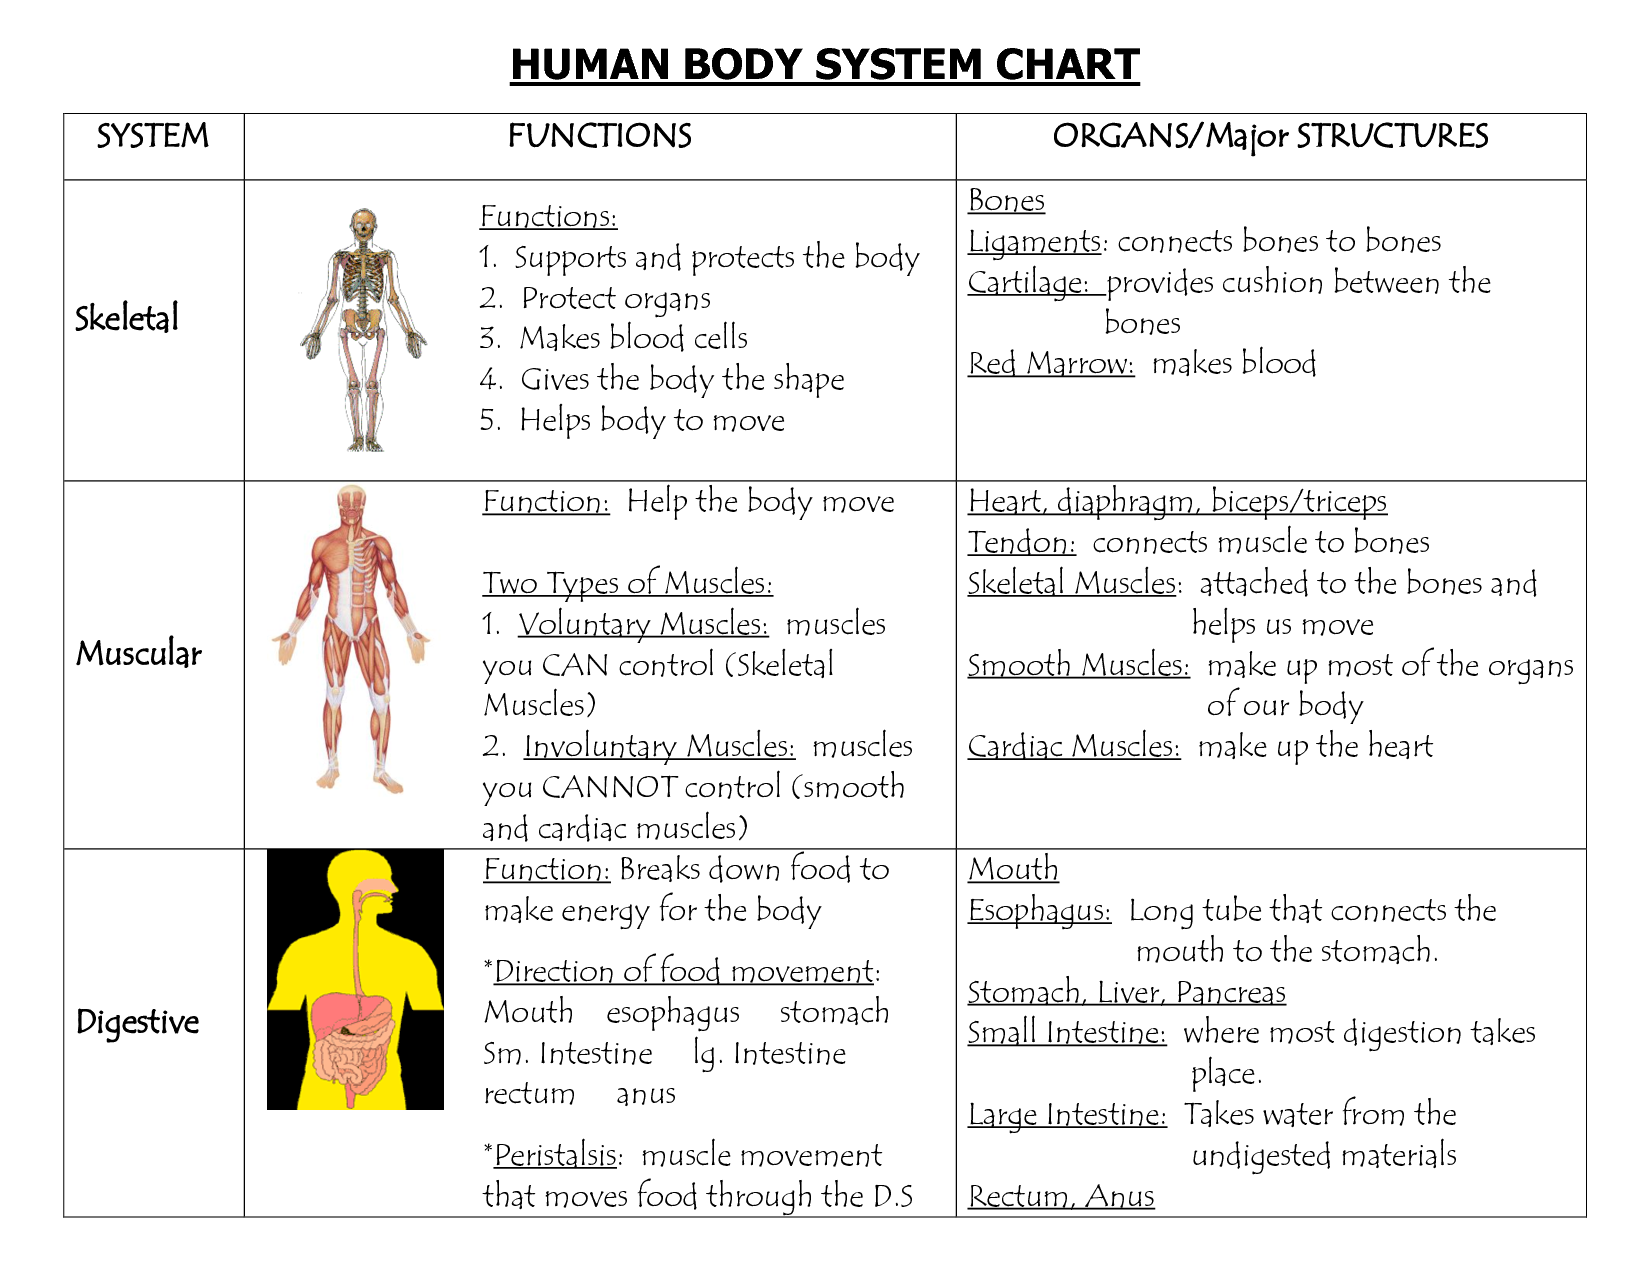 Worksheets Human Body System Worksheet functions of human body systems www okaidimalta com medical com